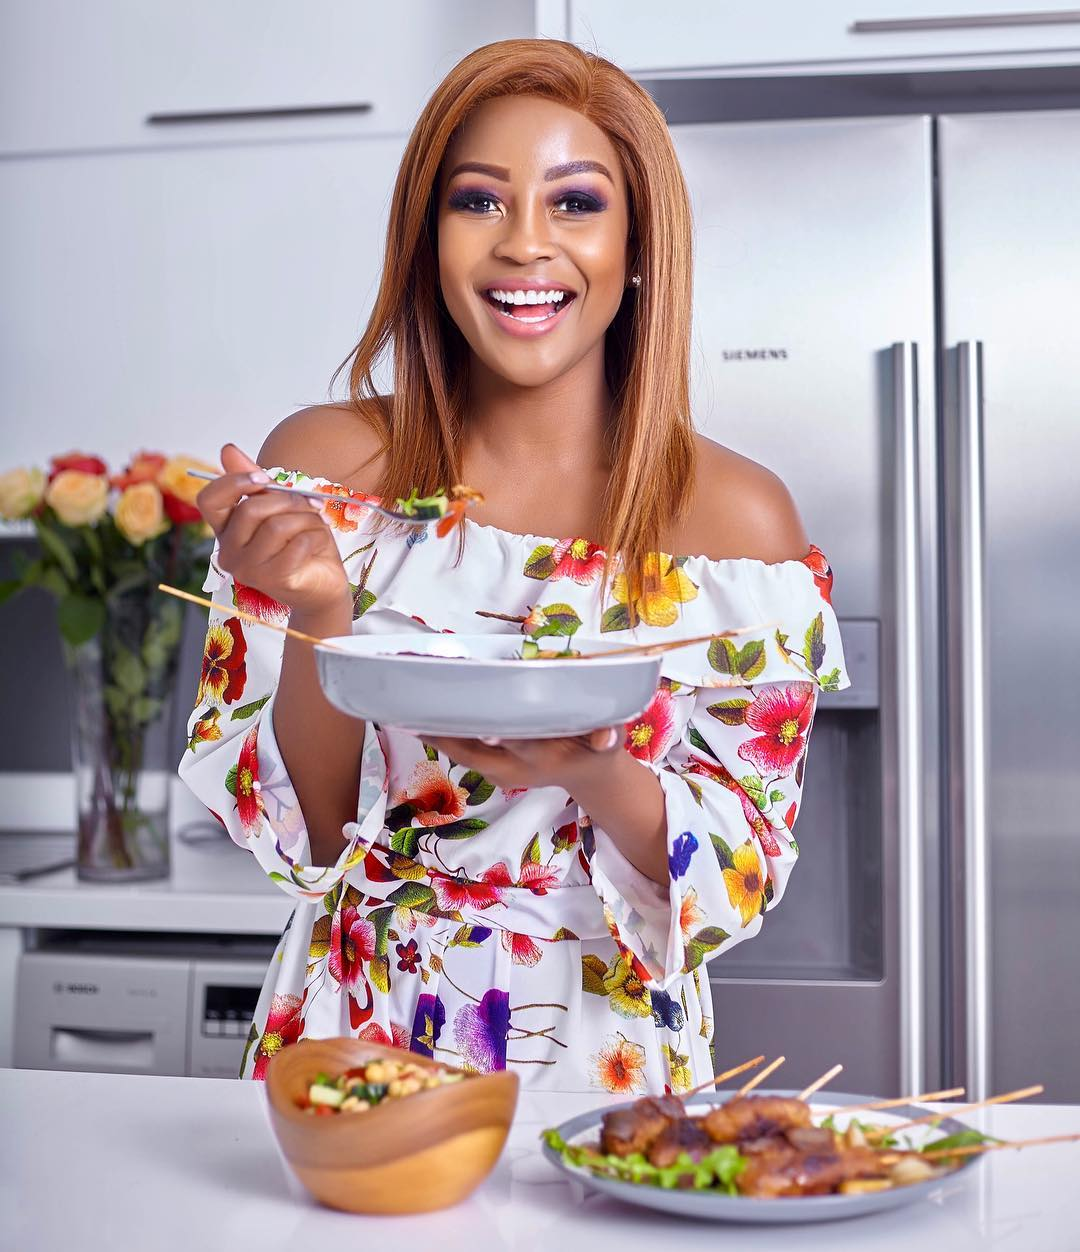 Lorna Maseko launches cooking channel on Youtube